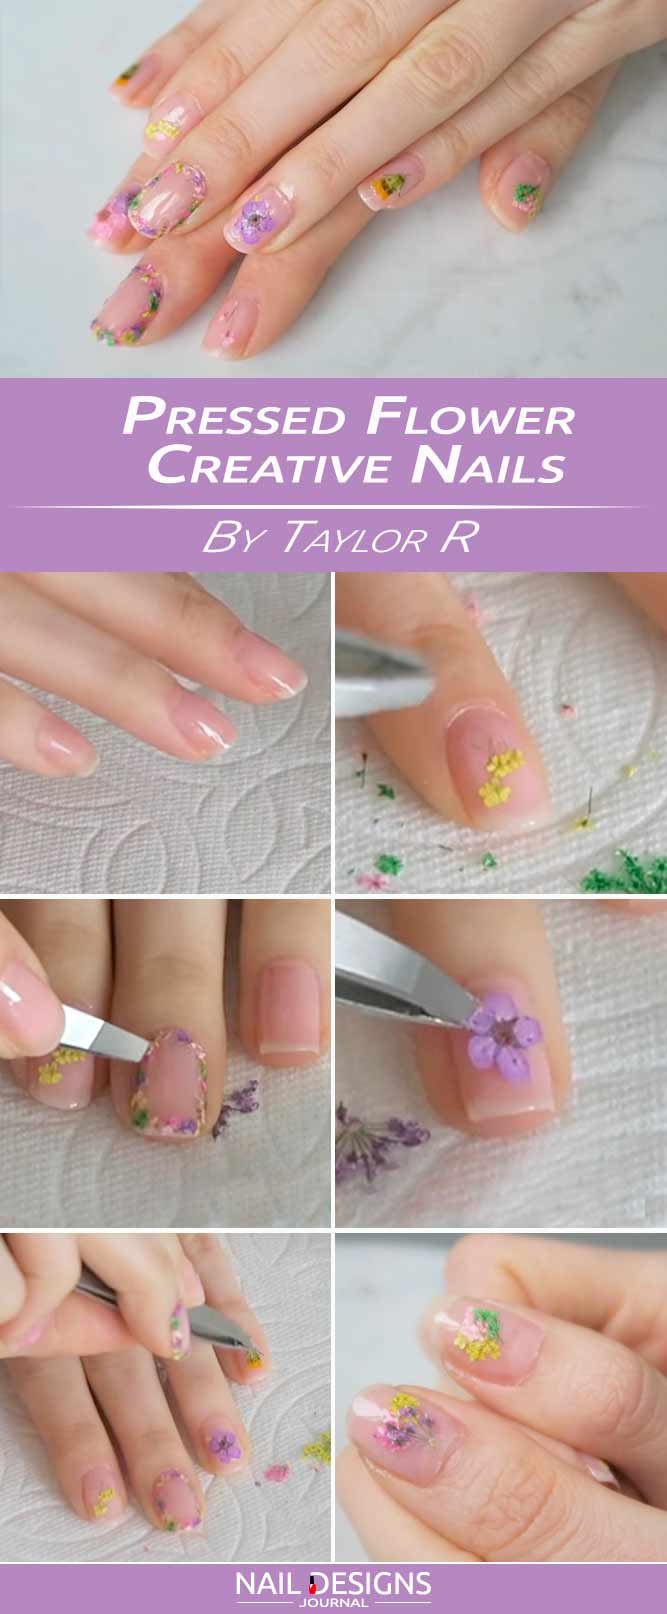 Pressed Flower Creative Nail Design